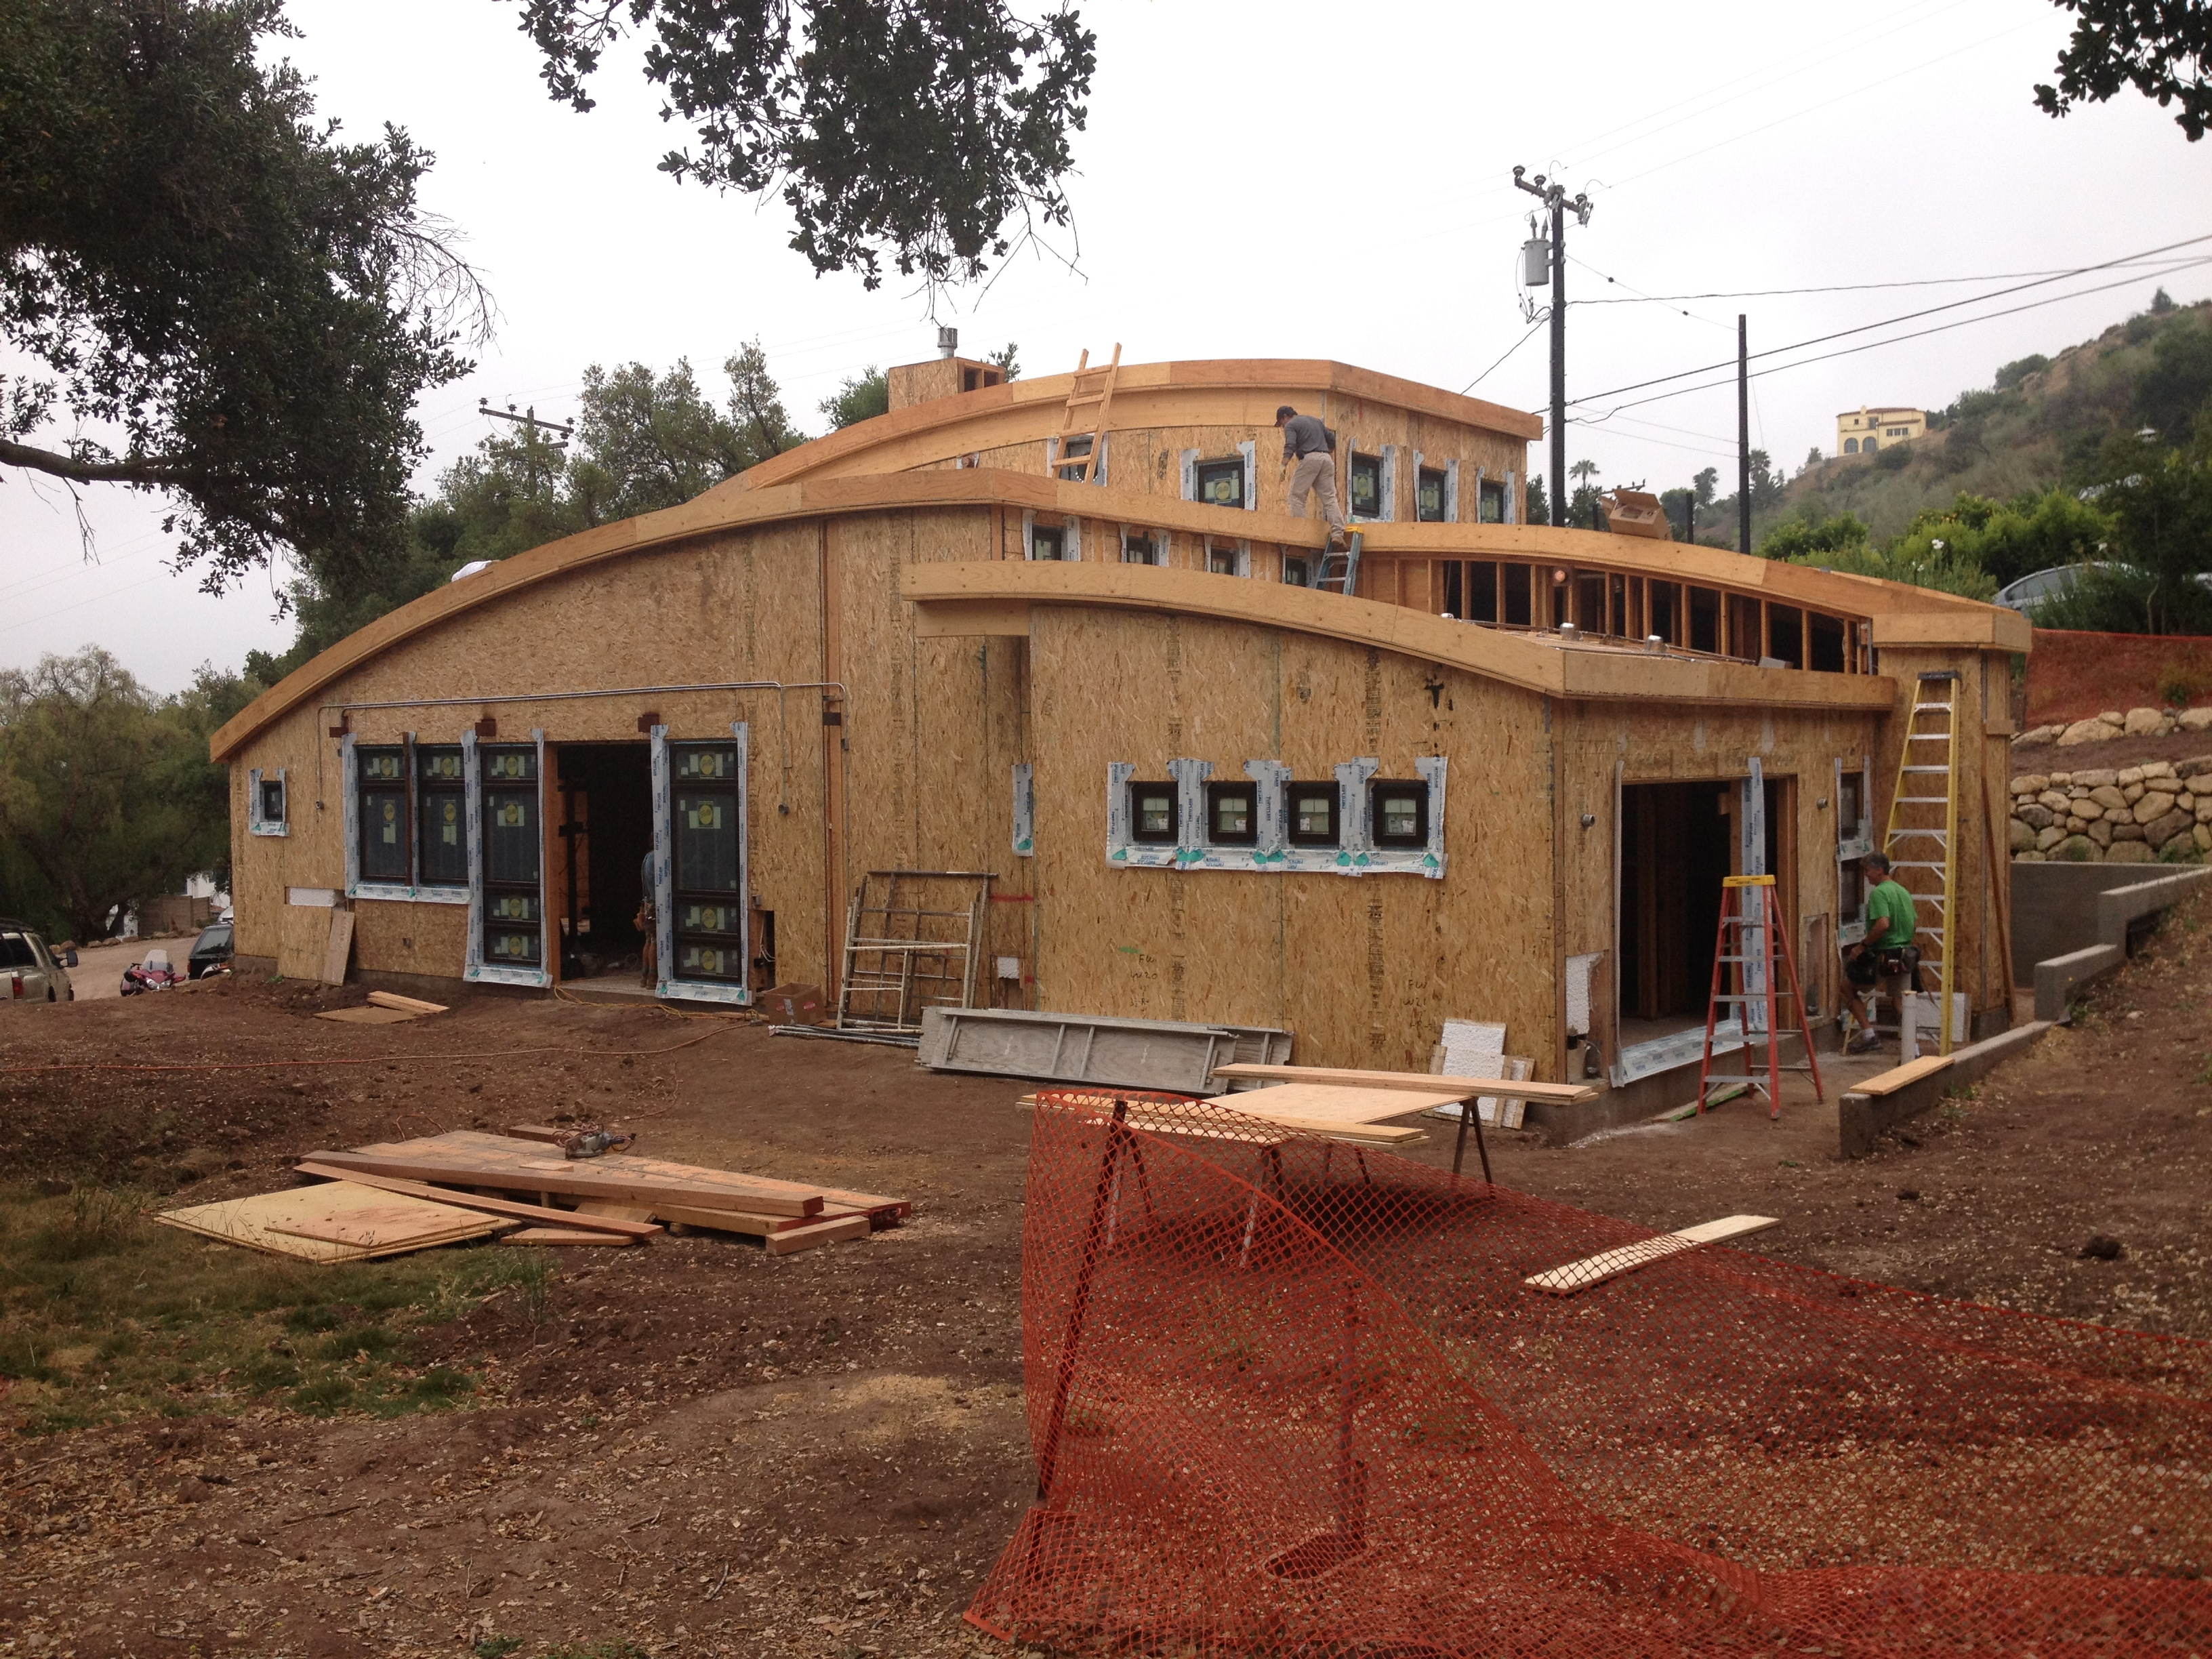 Sip construction premier sips structural insulated panels Sip built homes